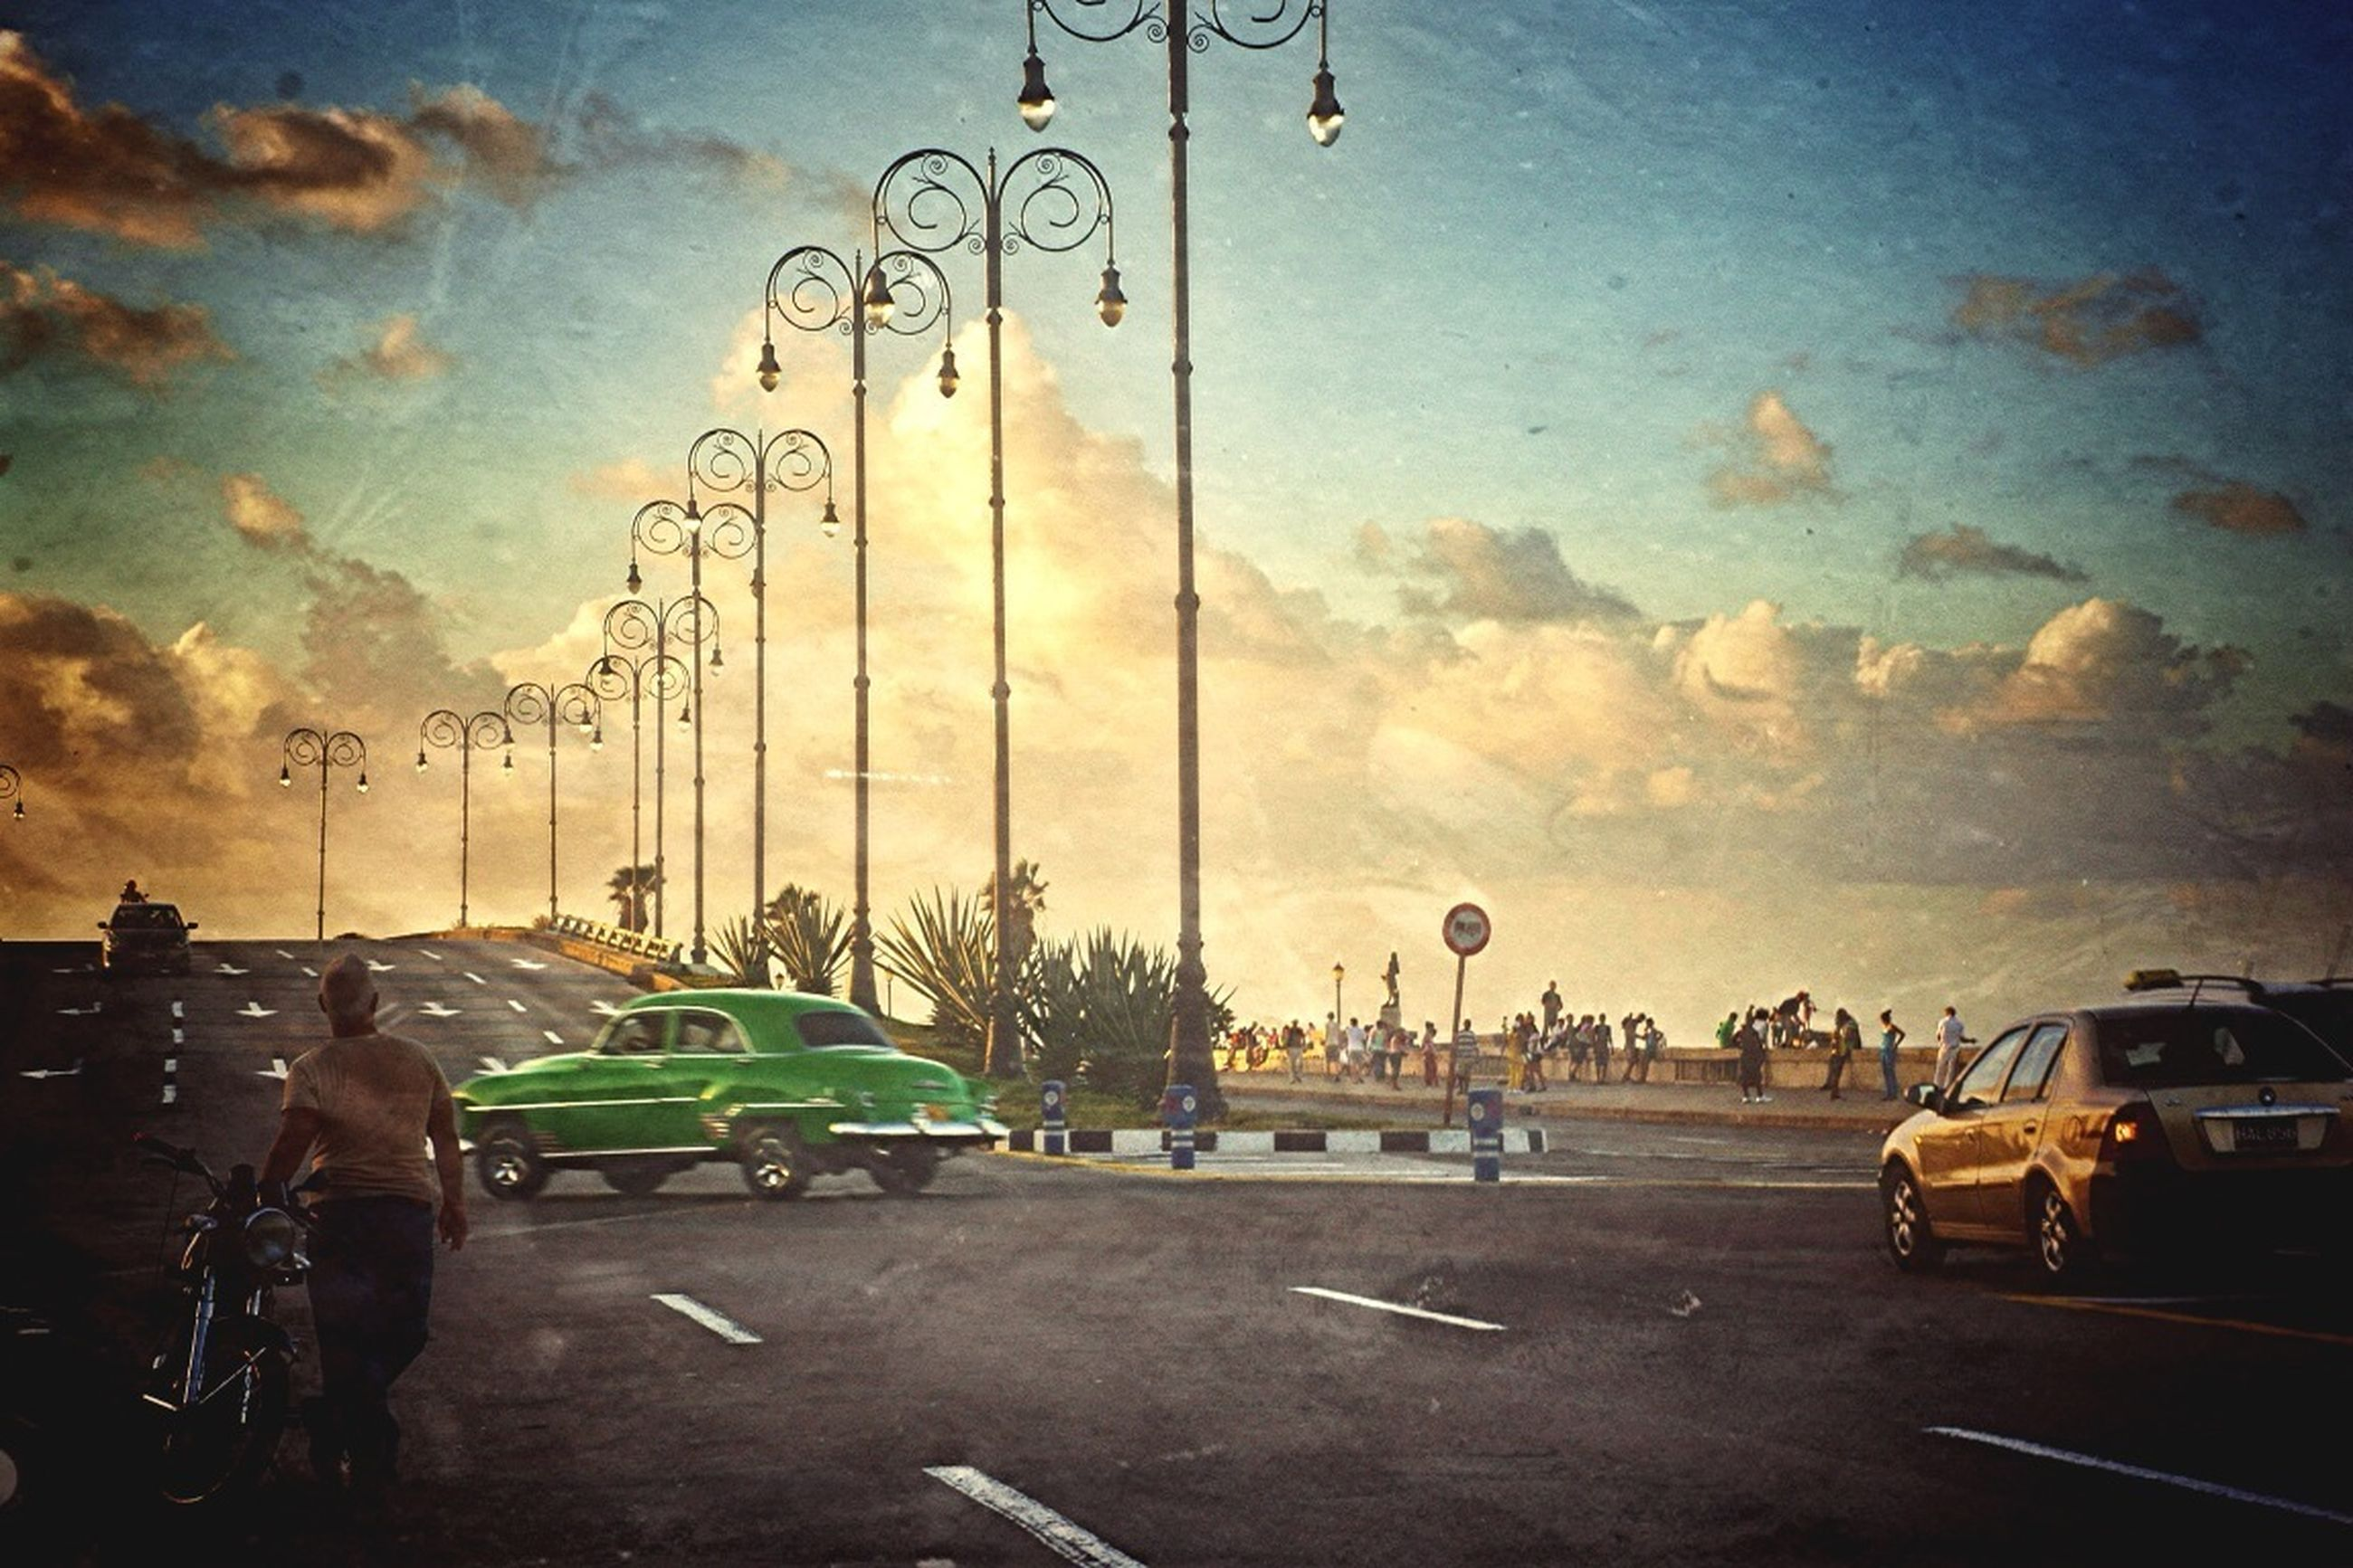 transportation, mode of transport, land vehicle, car, sky, bicycle, street, stationary, road, travel, cloud - sky, parked, parking, men, sunset, parking lot, on the move, outdoors, street light